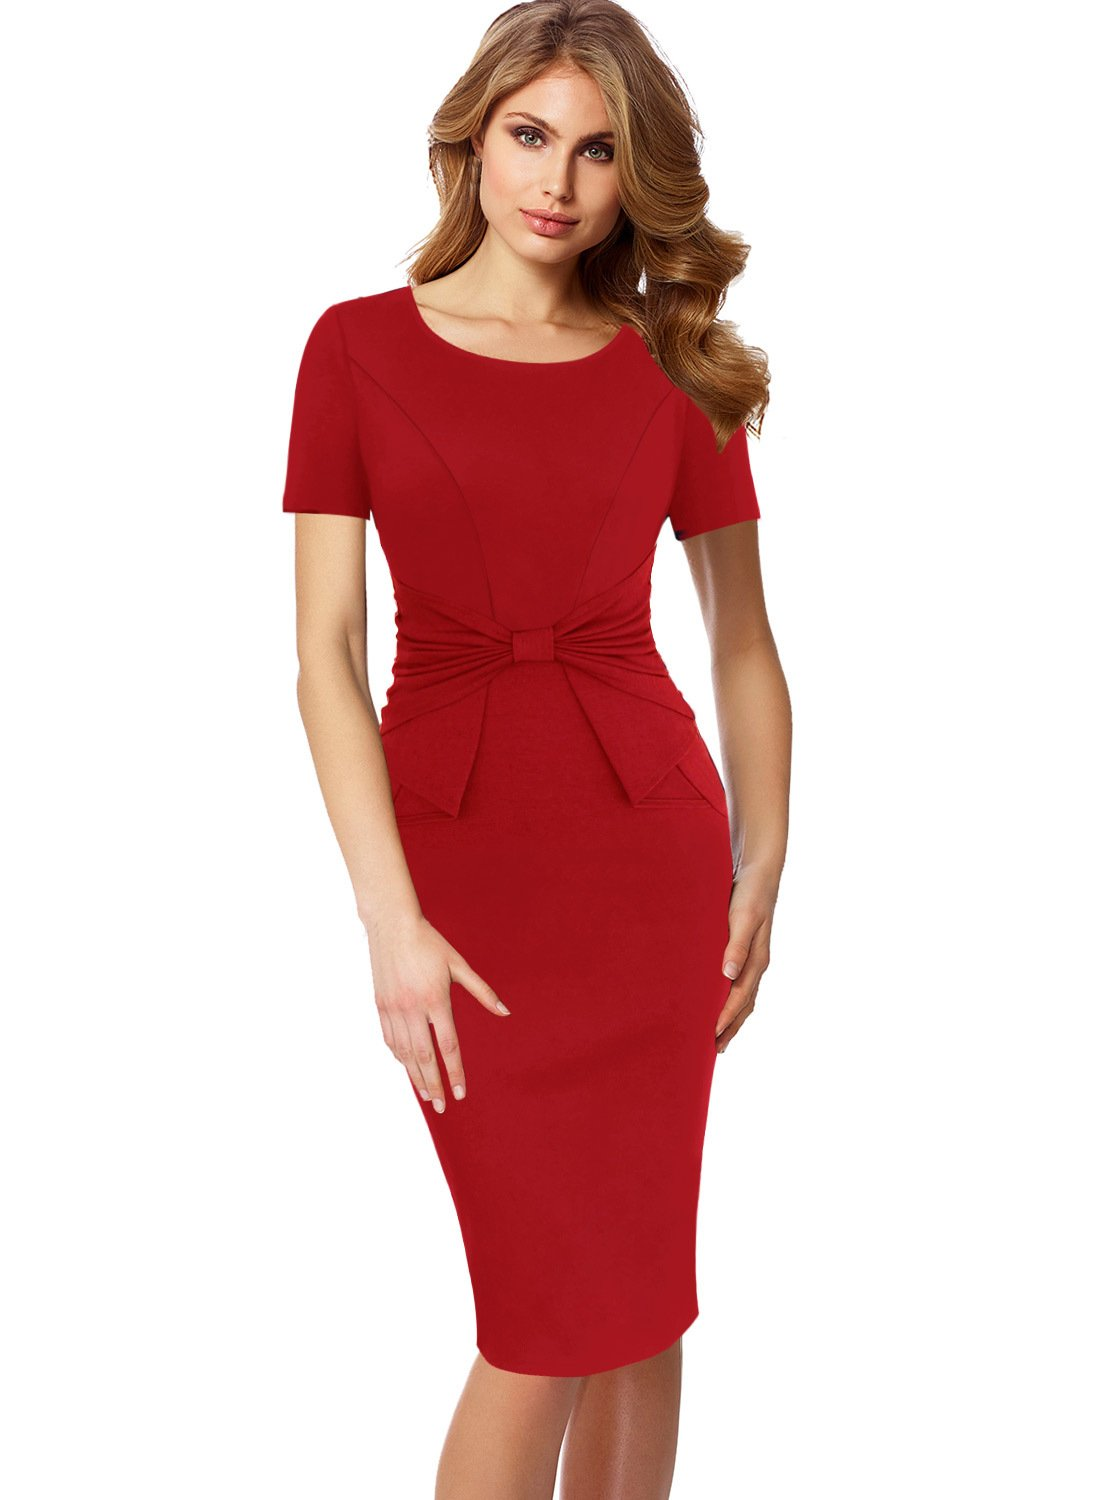 VFSHOW Womens Short Sleeves Pleated Bow Wear to Work Church Sheath Dress 321 RED M by VFSHOW